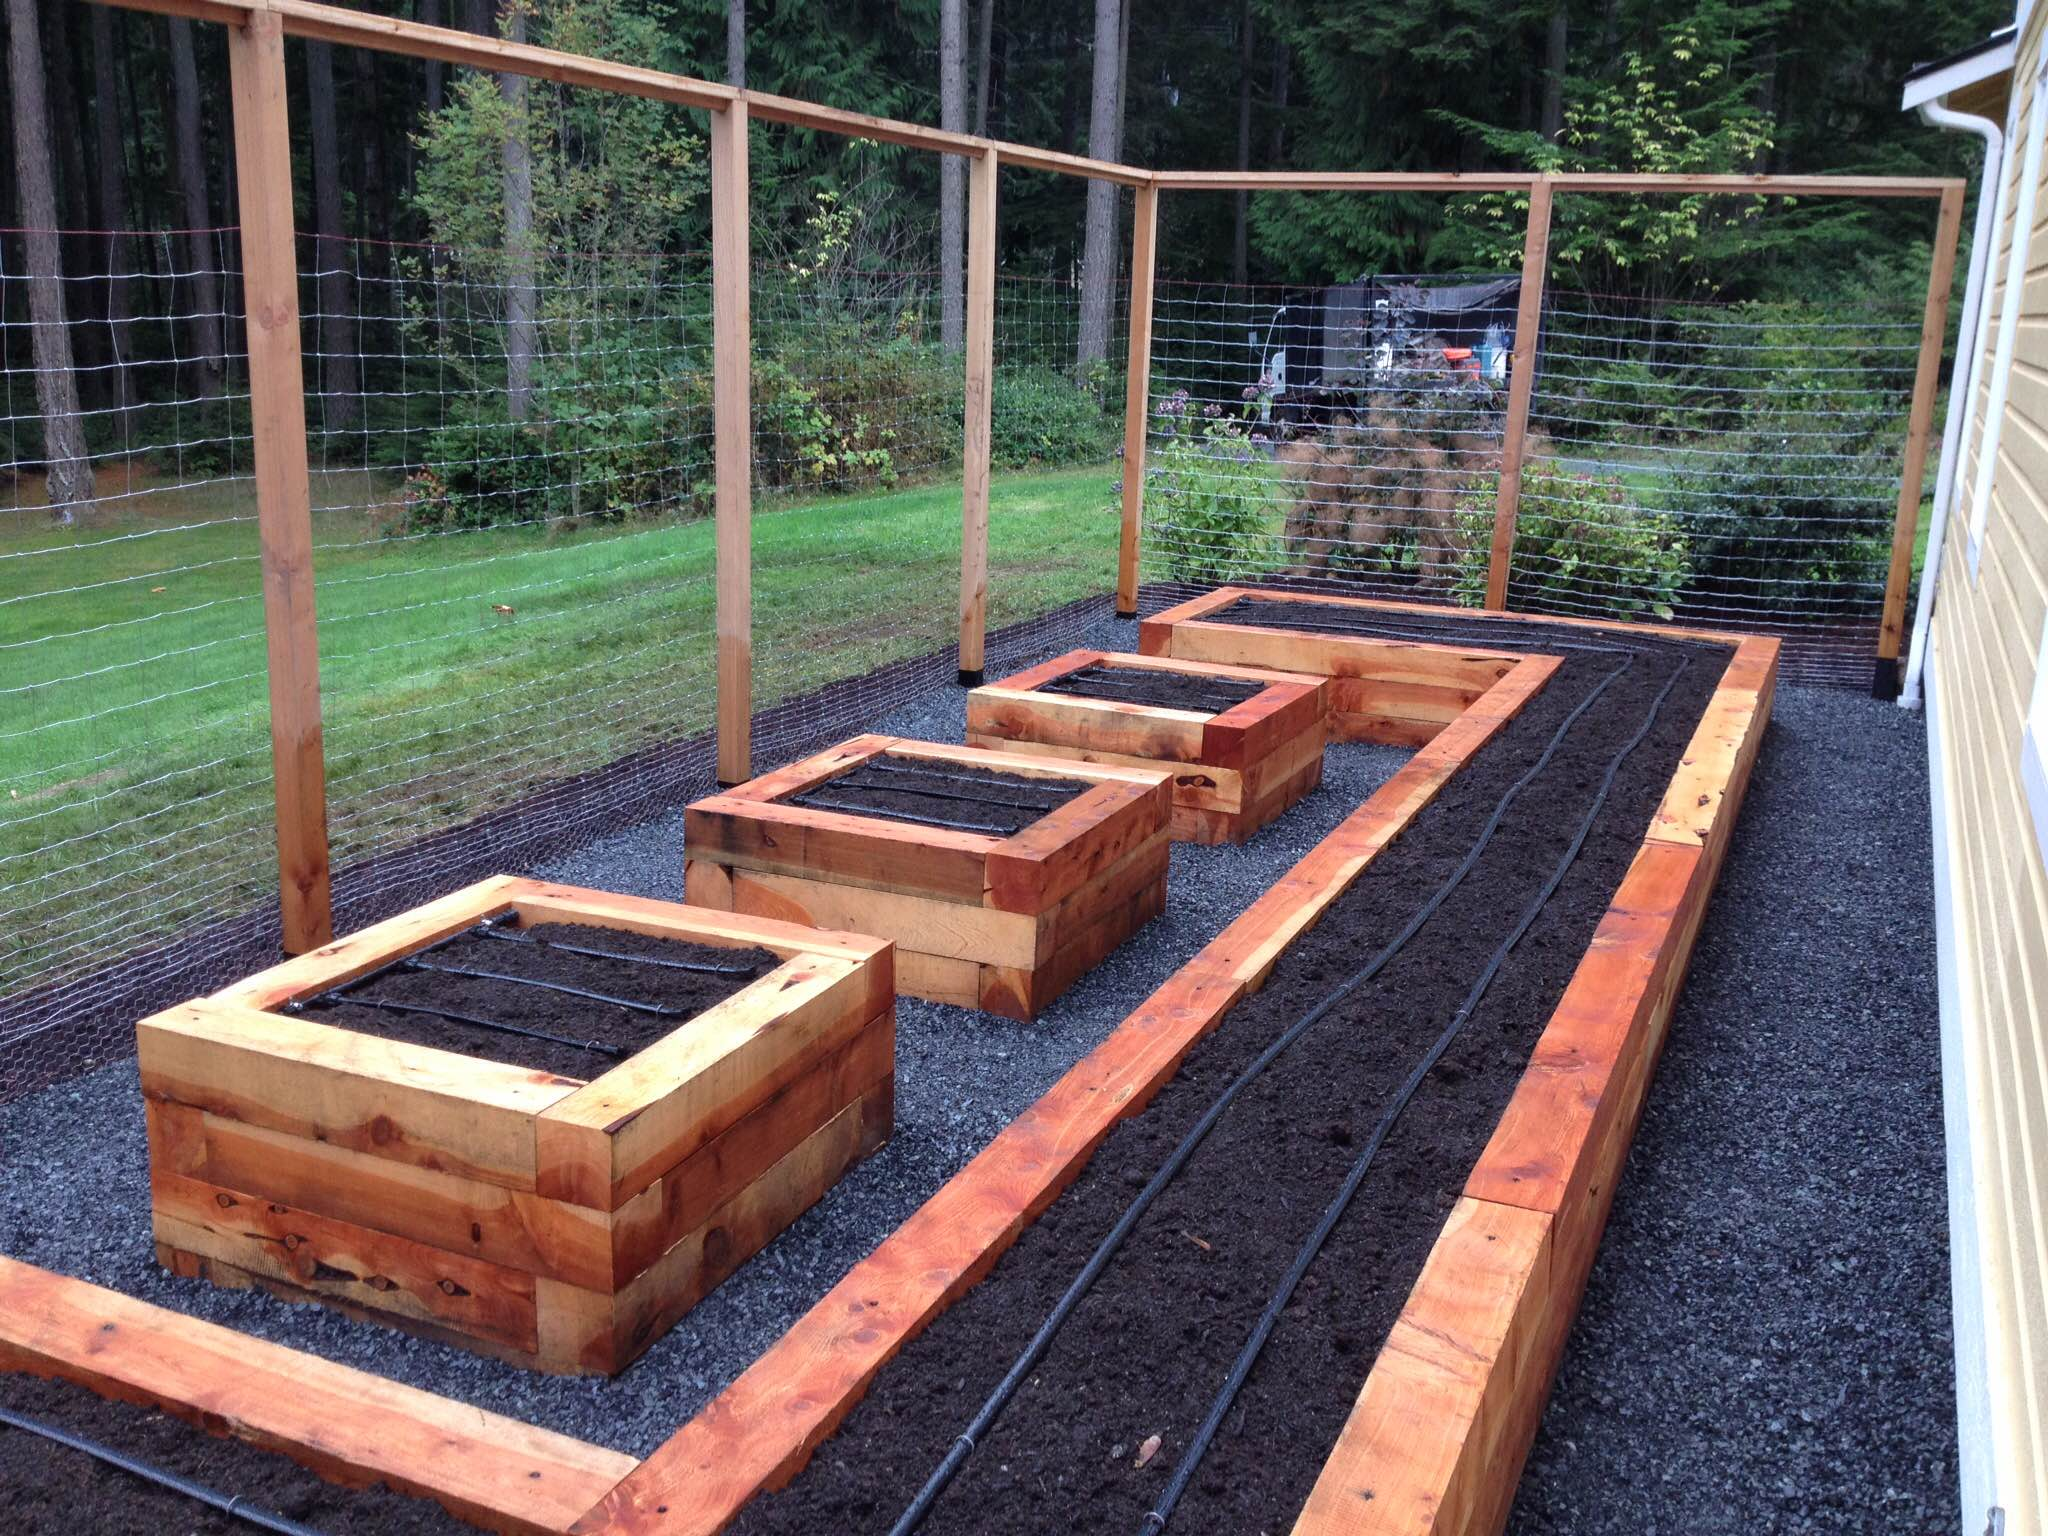 Enclosed Raised Bed Garden — Seattle Urban Farm Company on raised water garden, raised long garden, raised deck garden, raised kitchen garden, raised brick garden, raised patio garden, vertical herb garden, raised home garden,